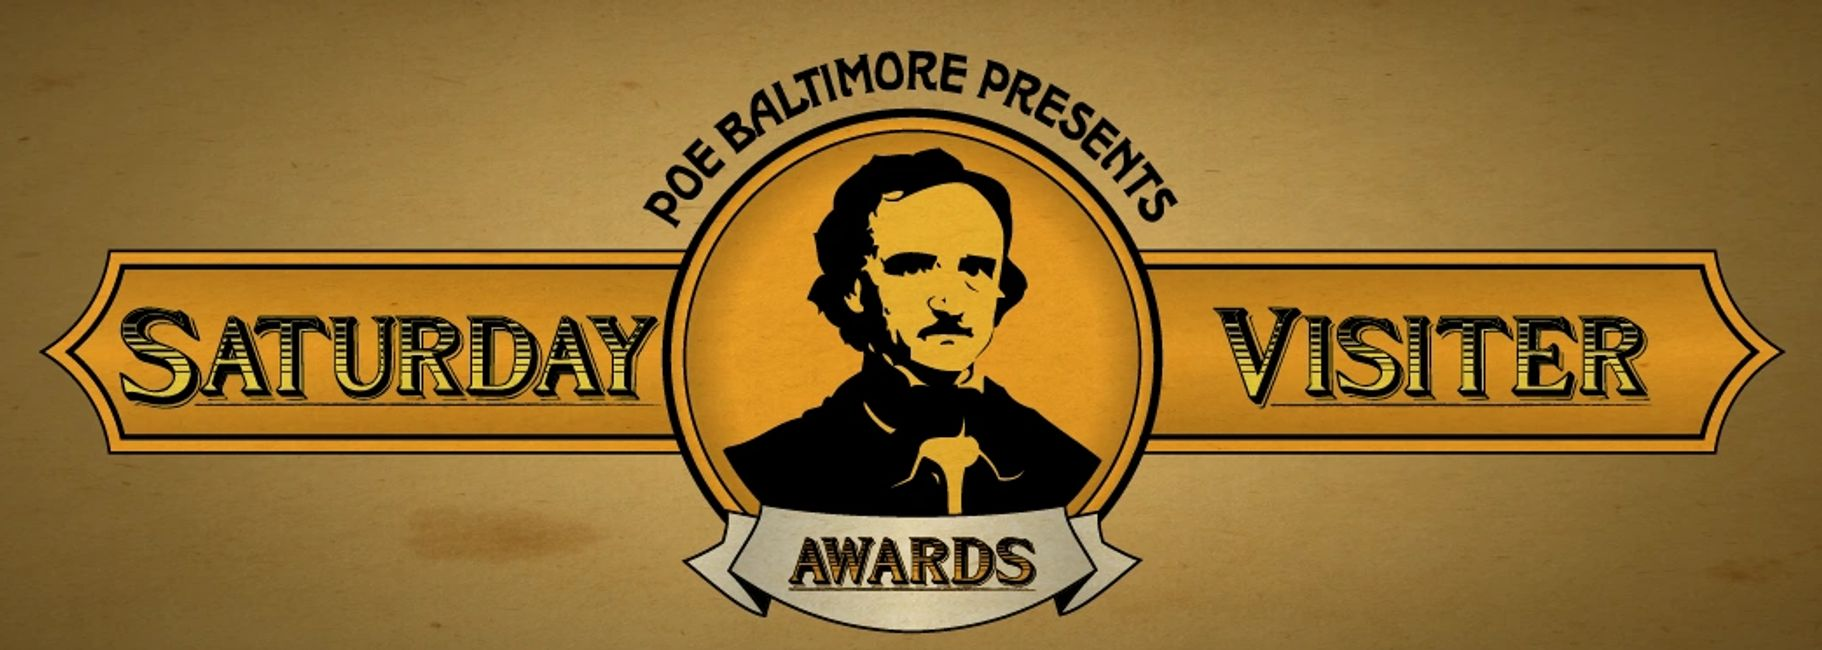 The Saturday Visiter Awards, presented by Poe Baltimore